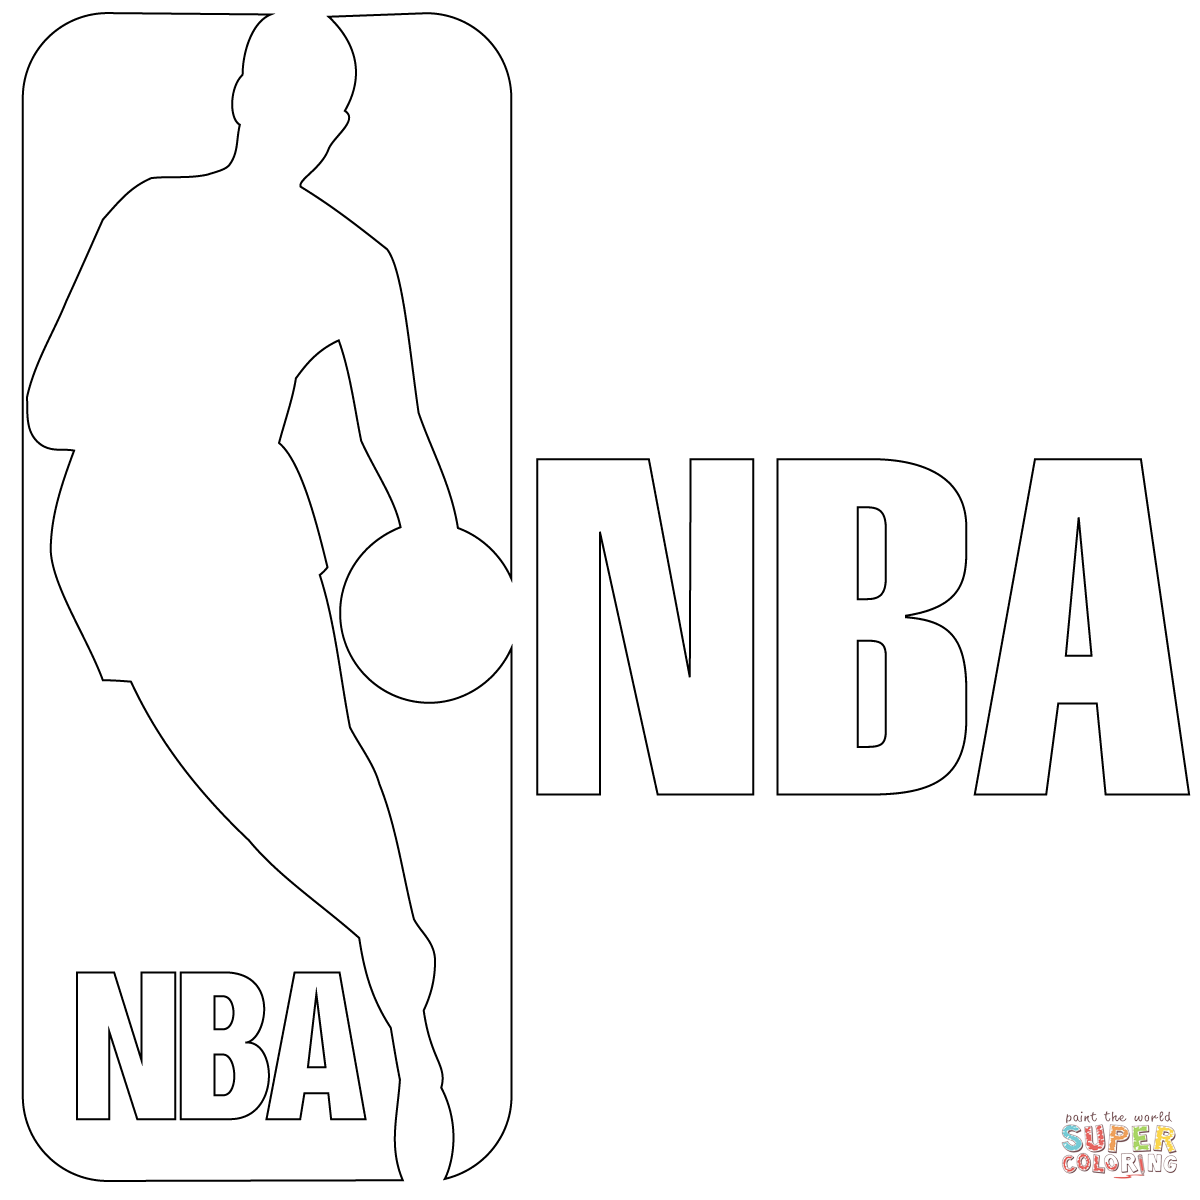 nba logo coloring page free printable coloring pages